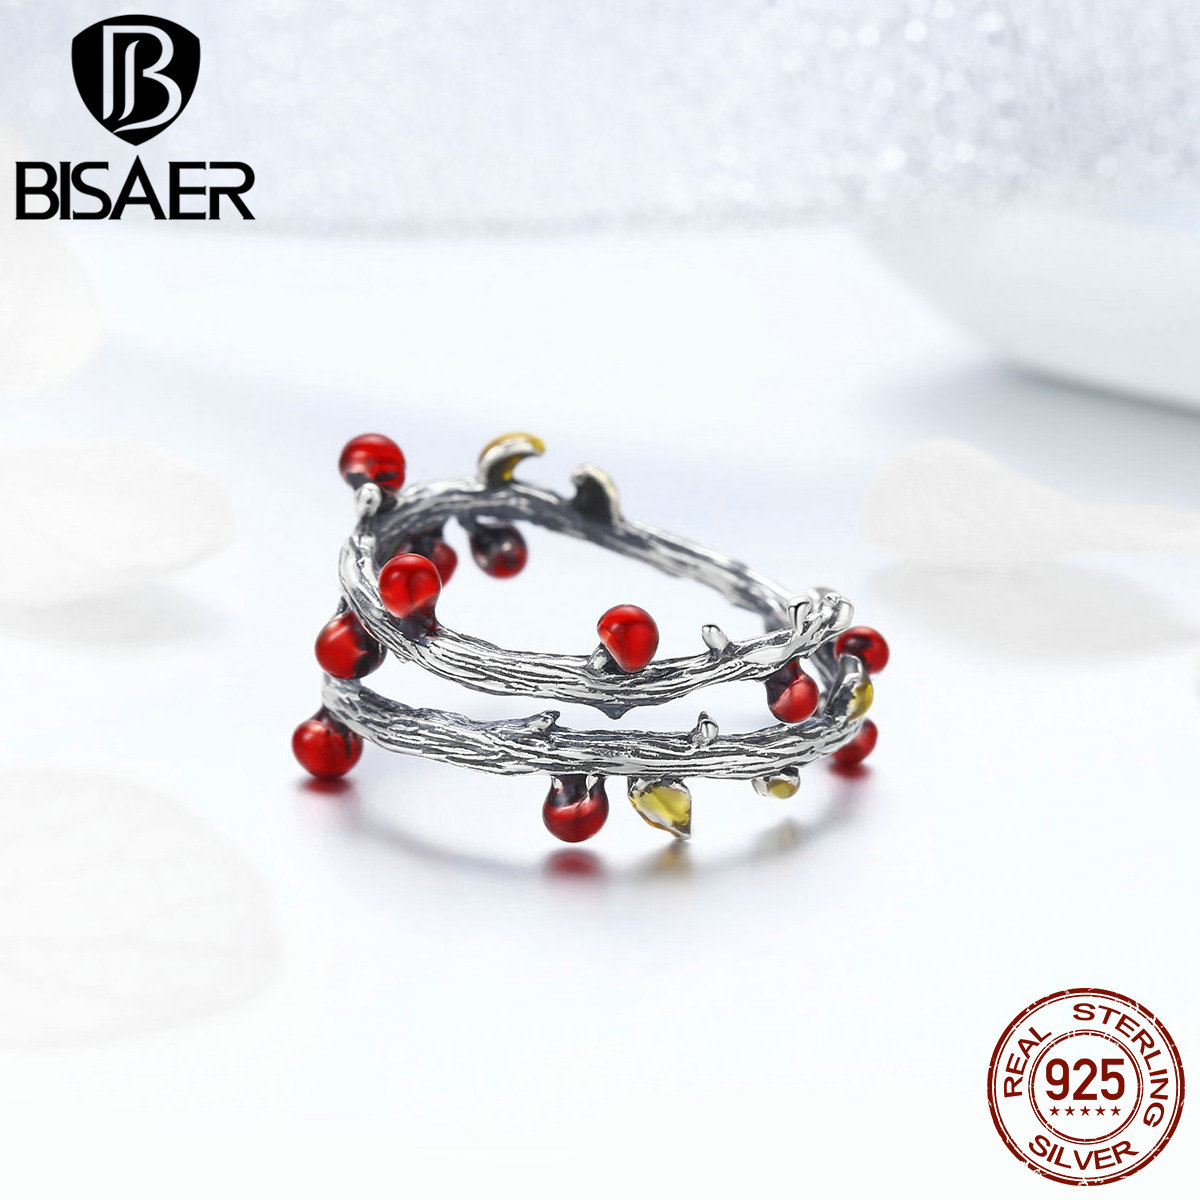 BISAER NEW Rings 925 Sterling Silver Vintage Red Berry Fruit Double Layers Open Finger Rings for Women Fashion Jewelry GXR442